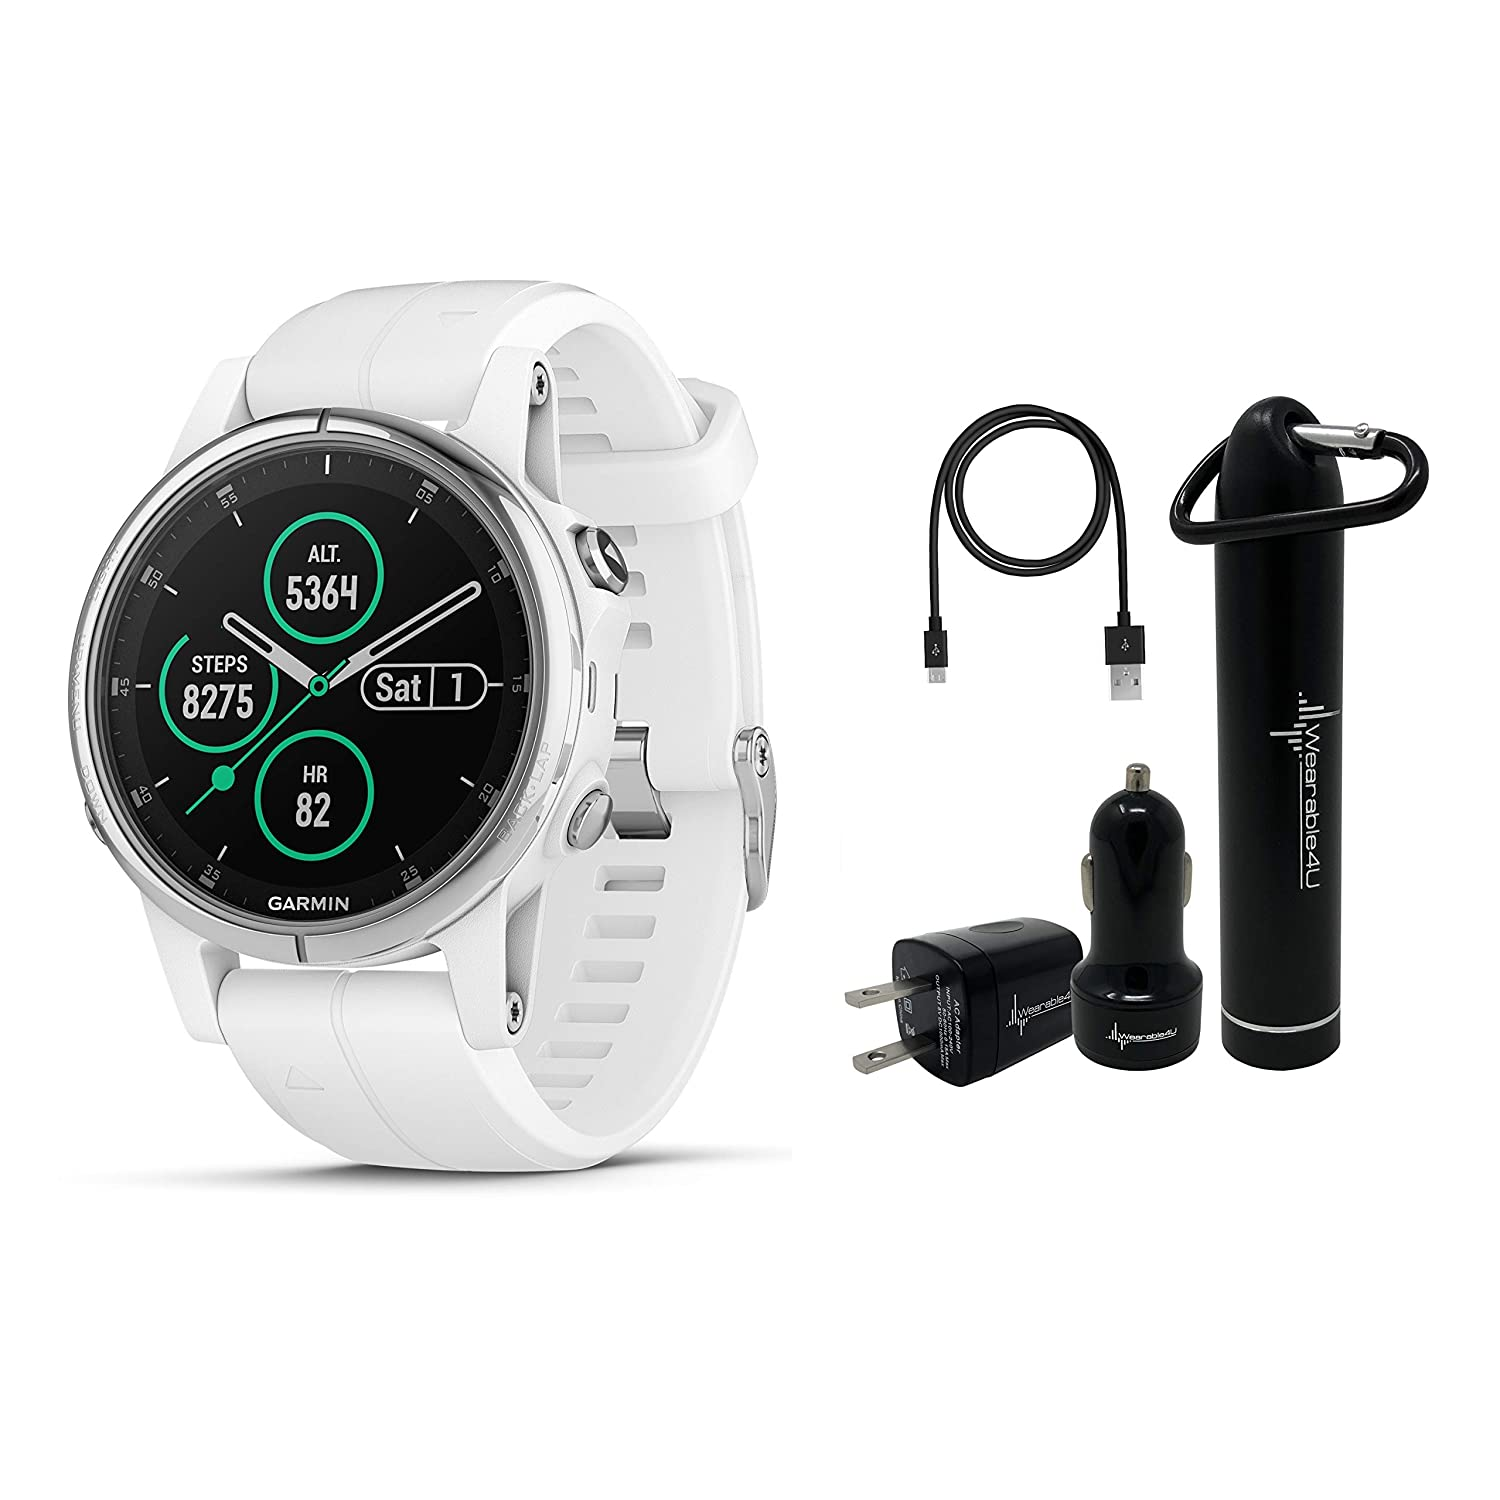 Amazon.com: Garmin Fenix 5S Plus Premium Multisport GPS ...